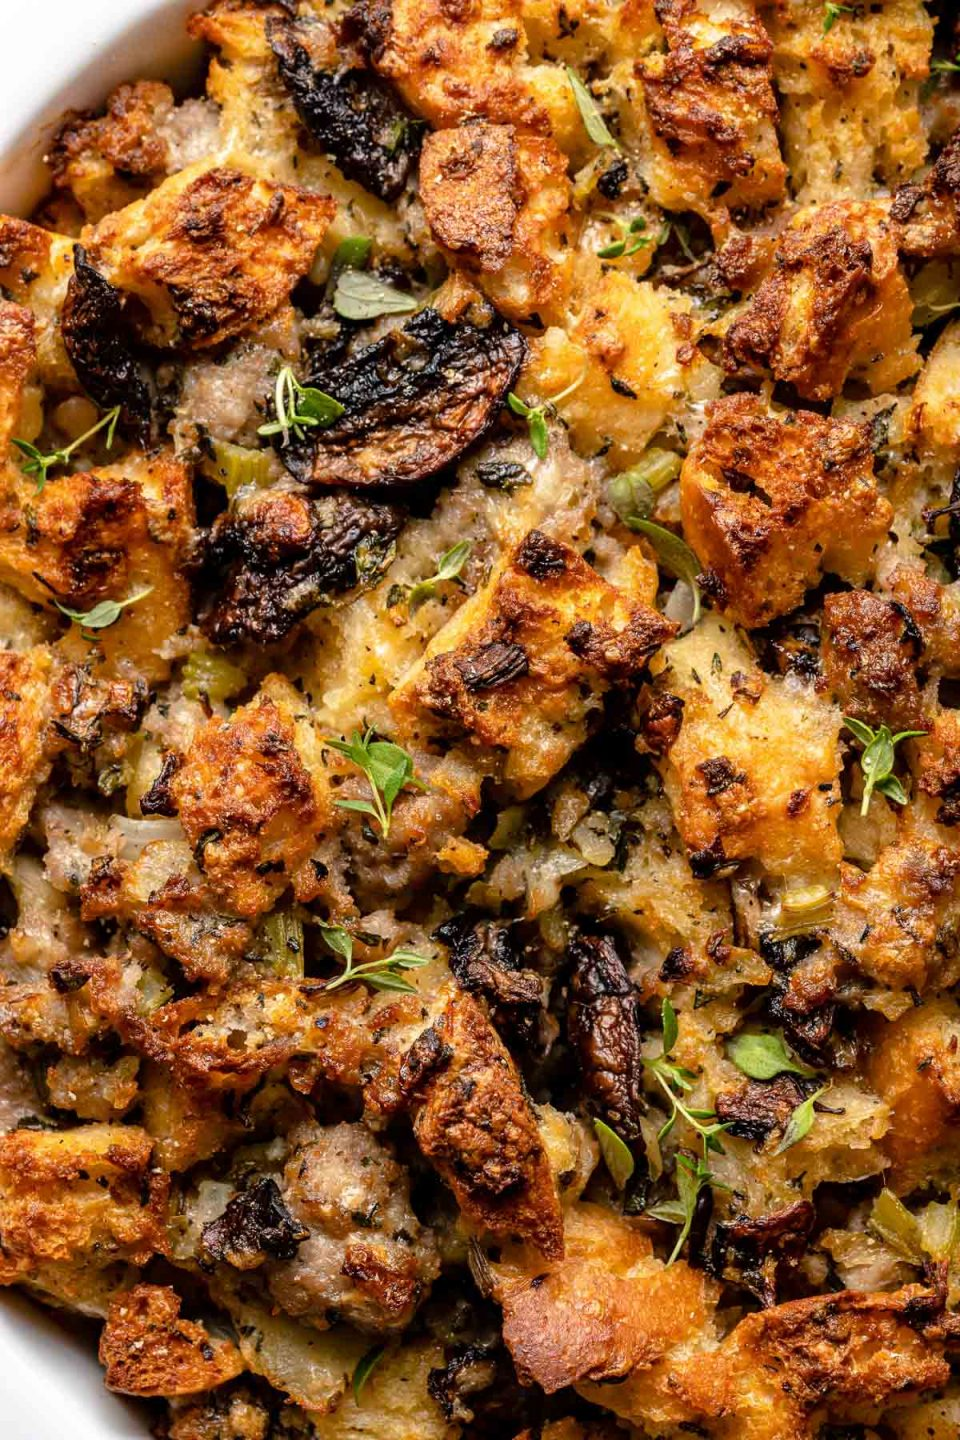 Close view of top of baked sourdough stuffing. The stuffing is topped with fresh thyme.